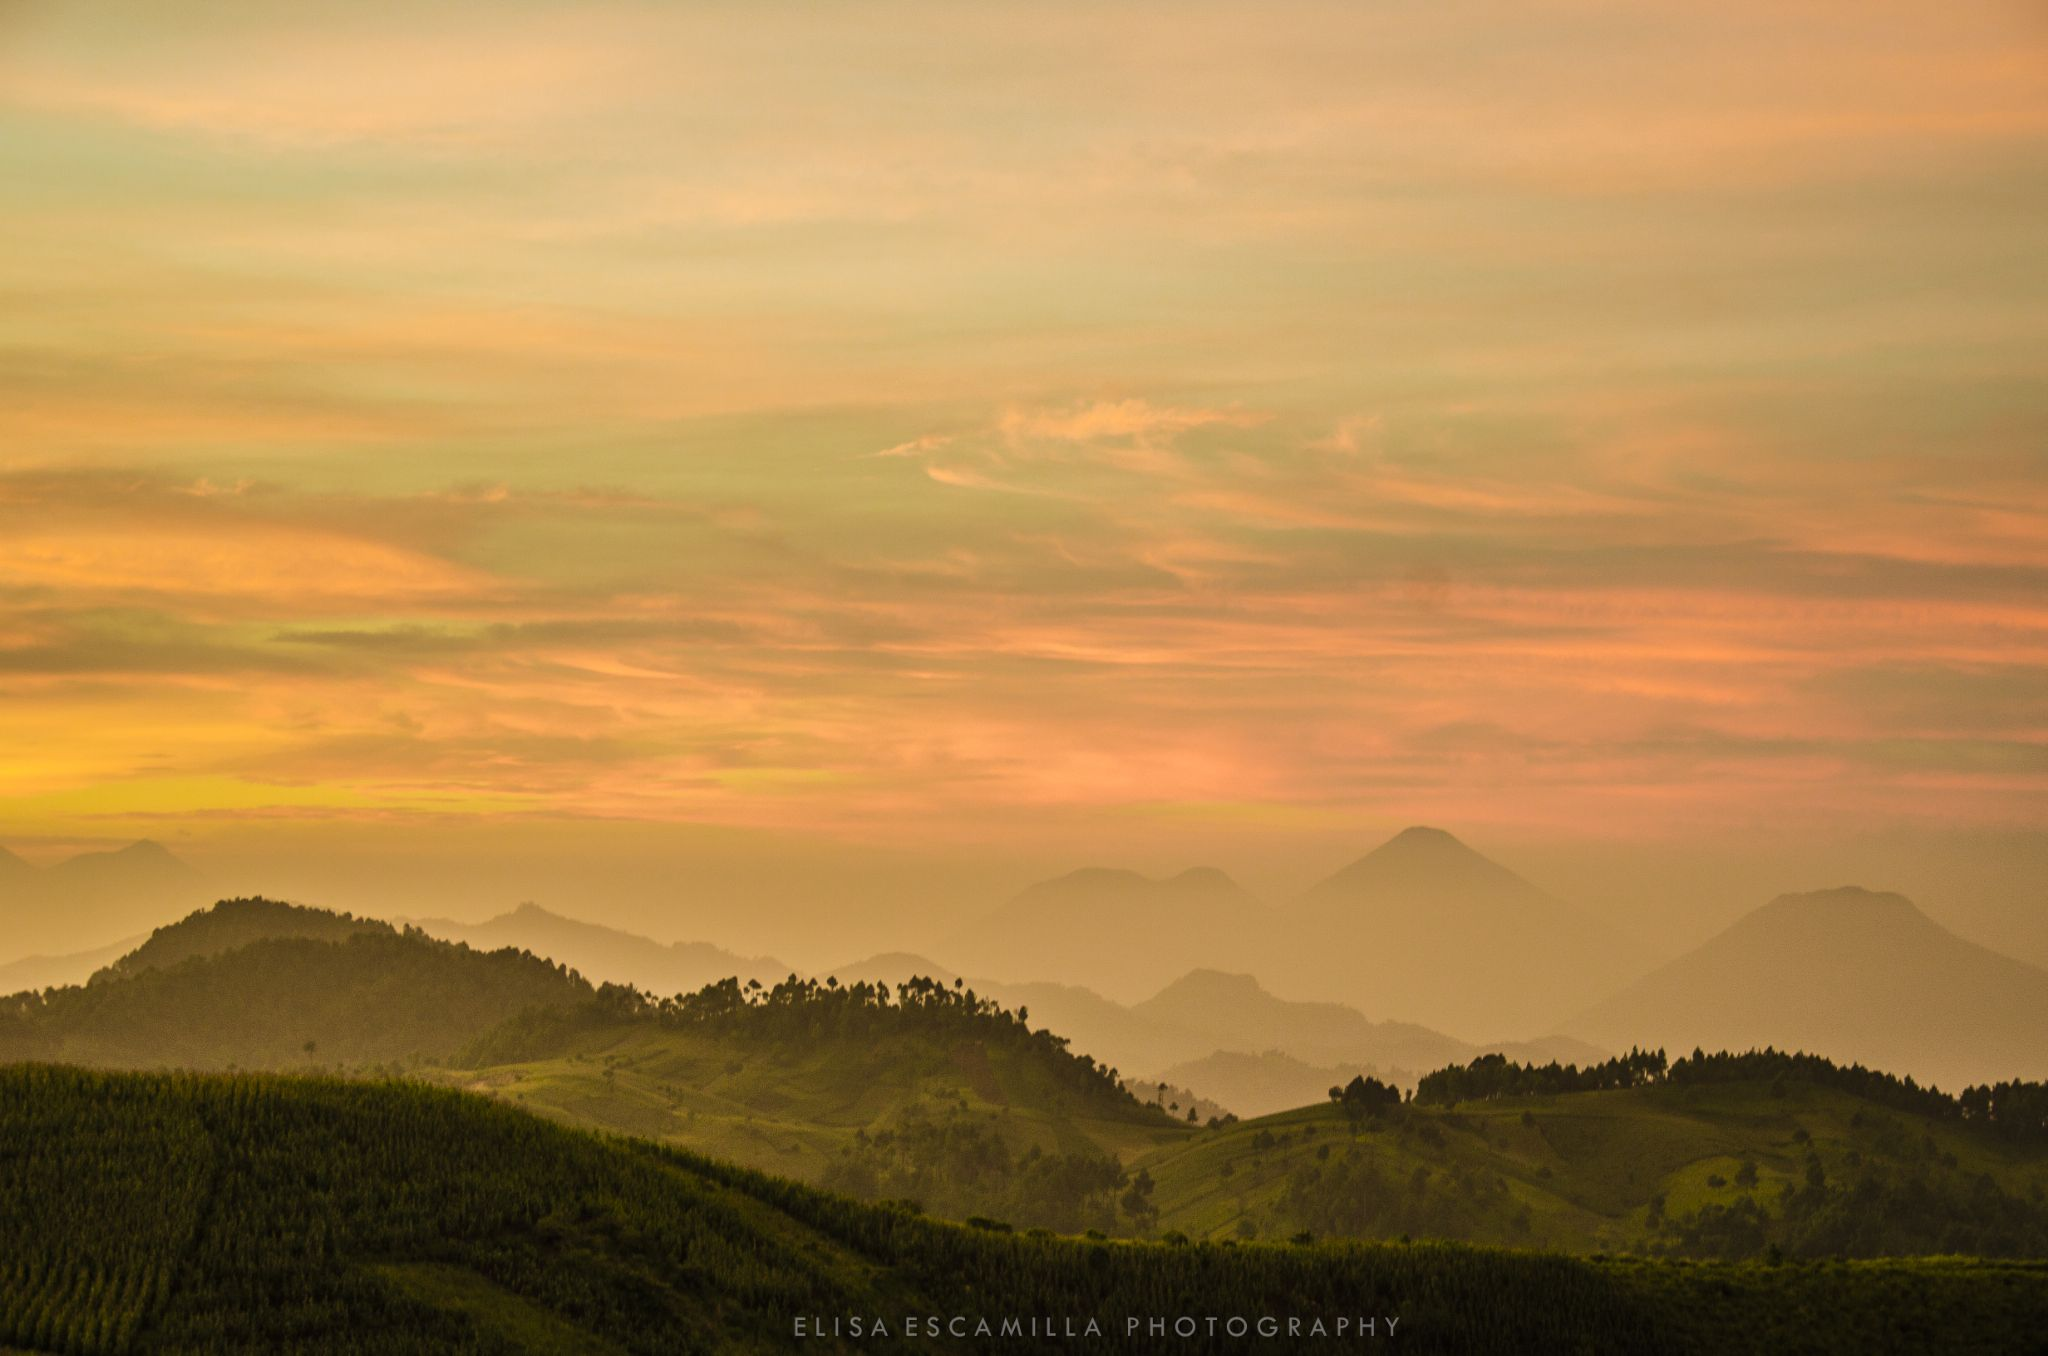 Volcanos and mountains in Guatemala by Elisa Escamilla photography